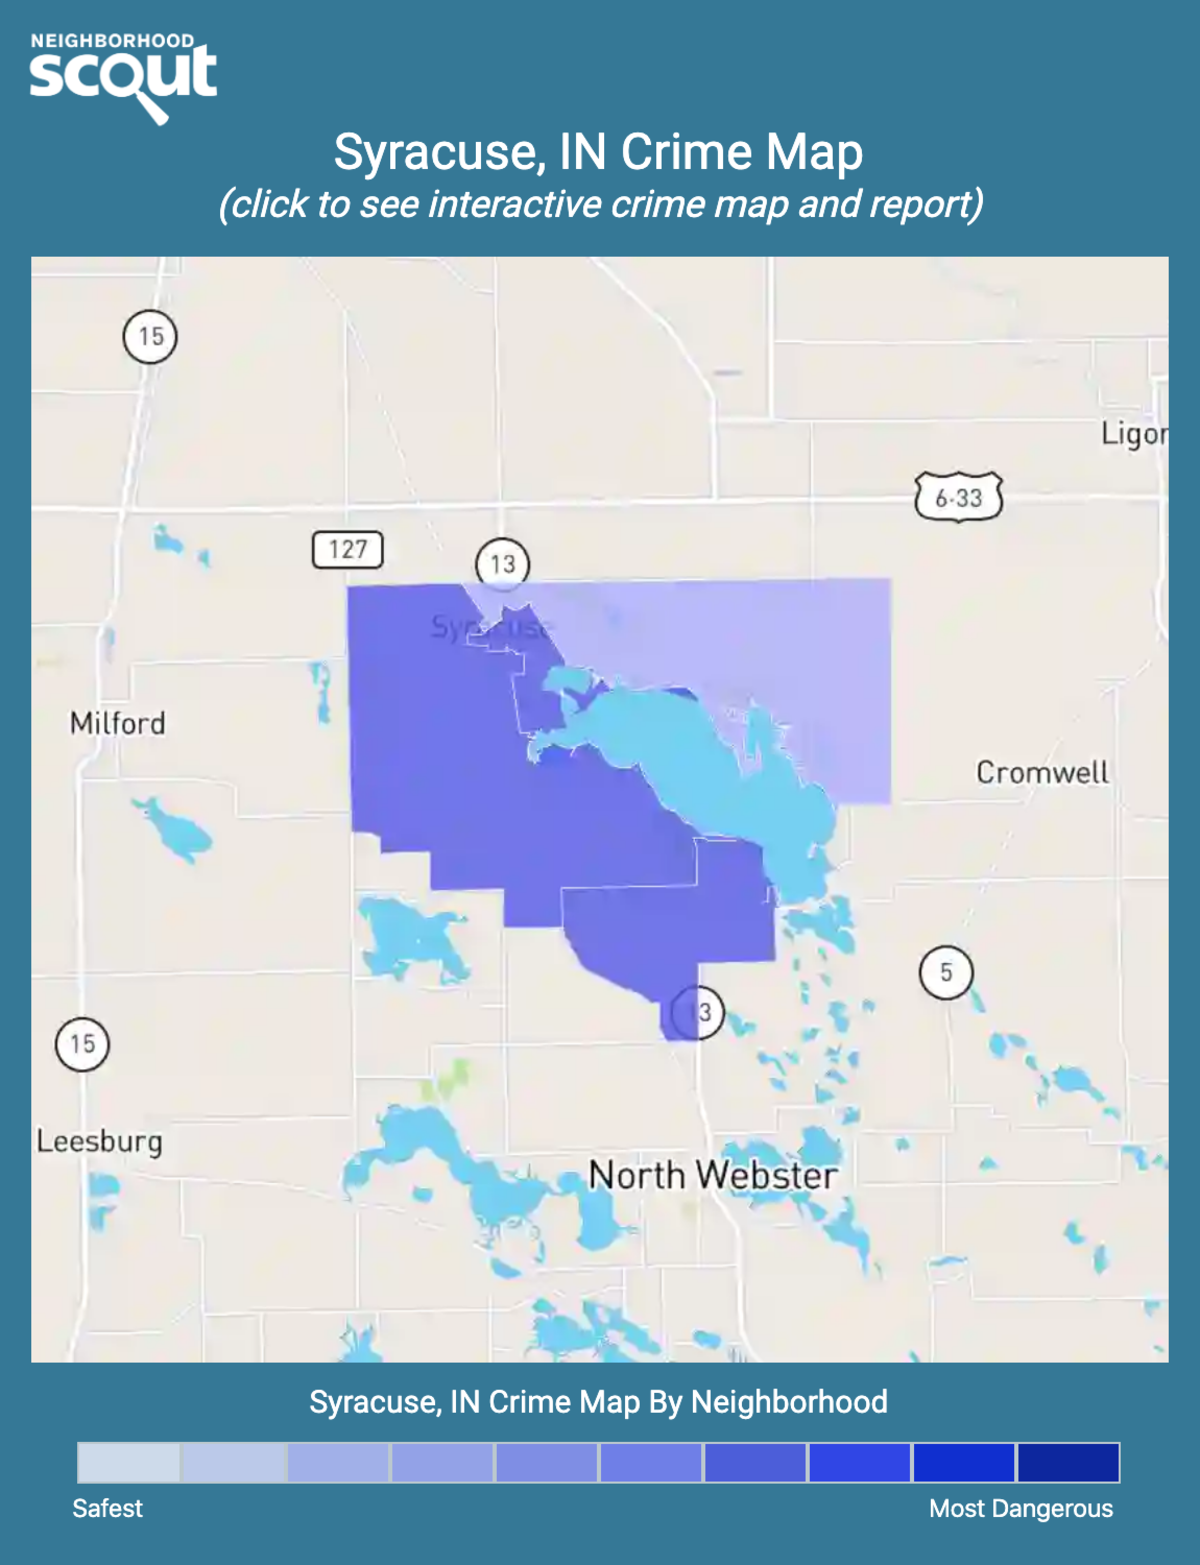 Syracuse, IN, 46567 Crime Rates and Crime Statistics ...